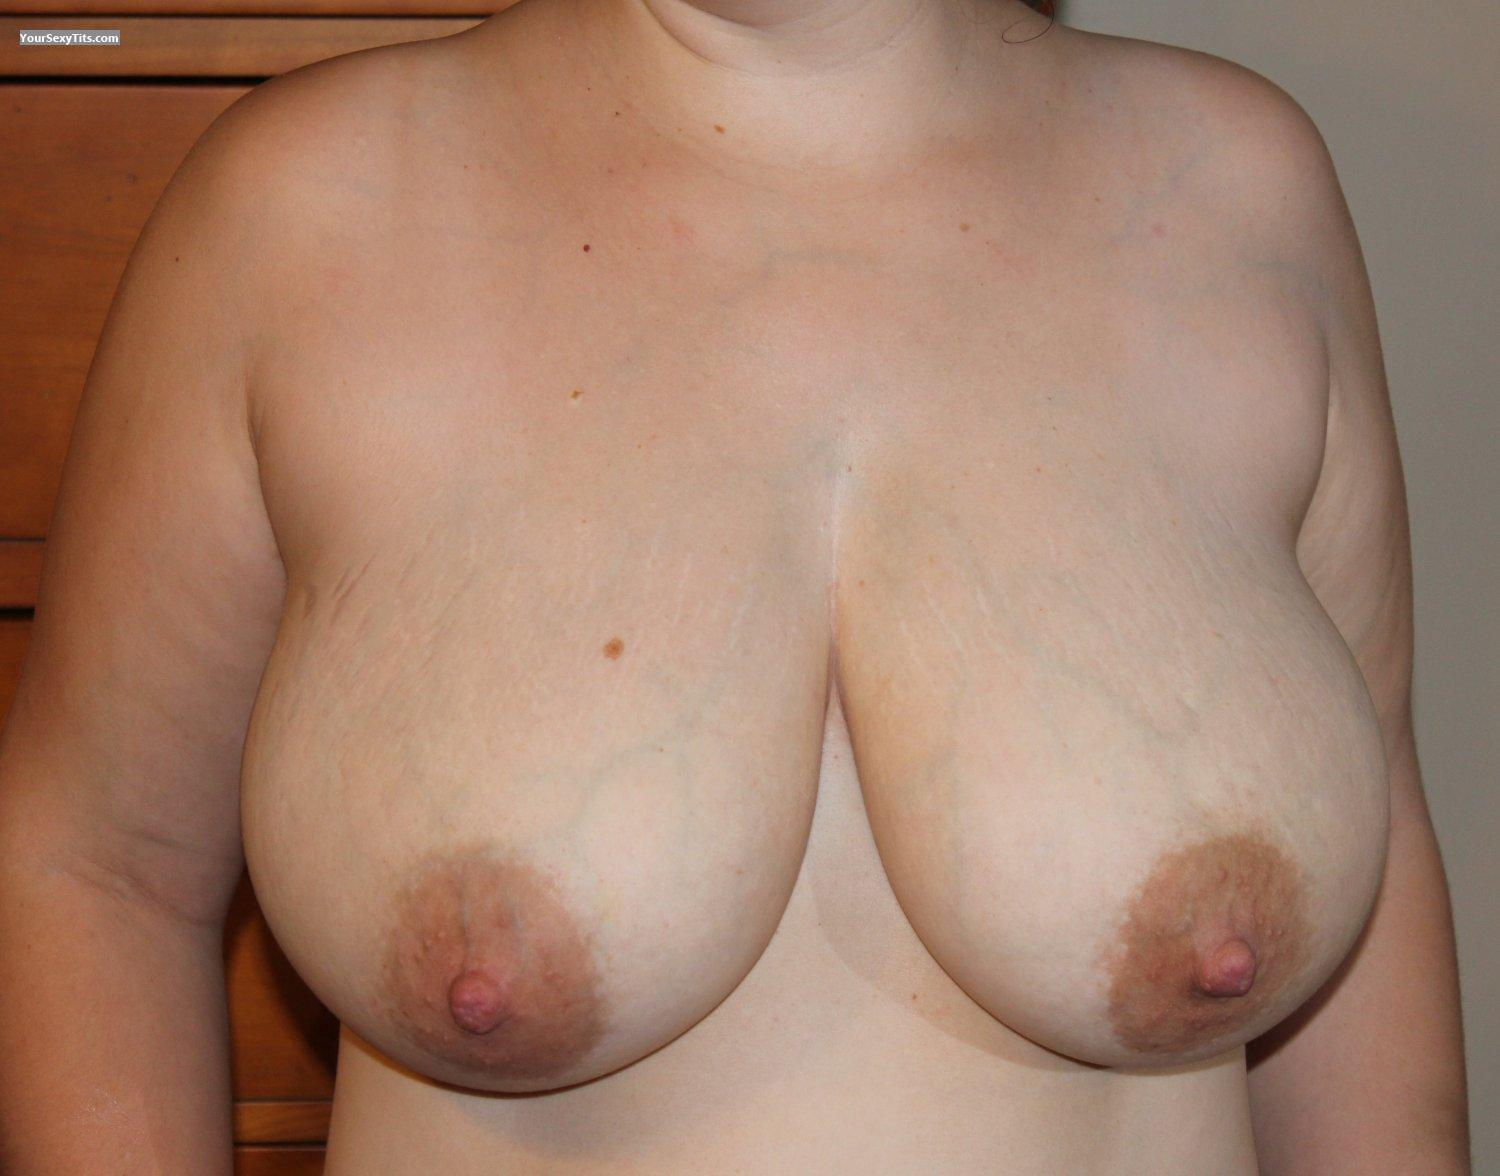 Tit Flash: Very Big Tits - GreenMandM from United States